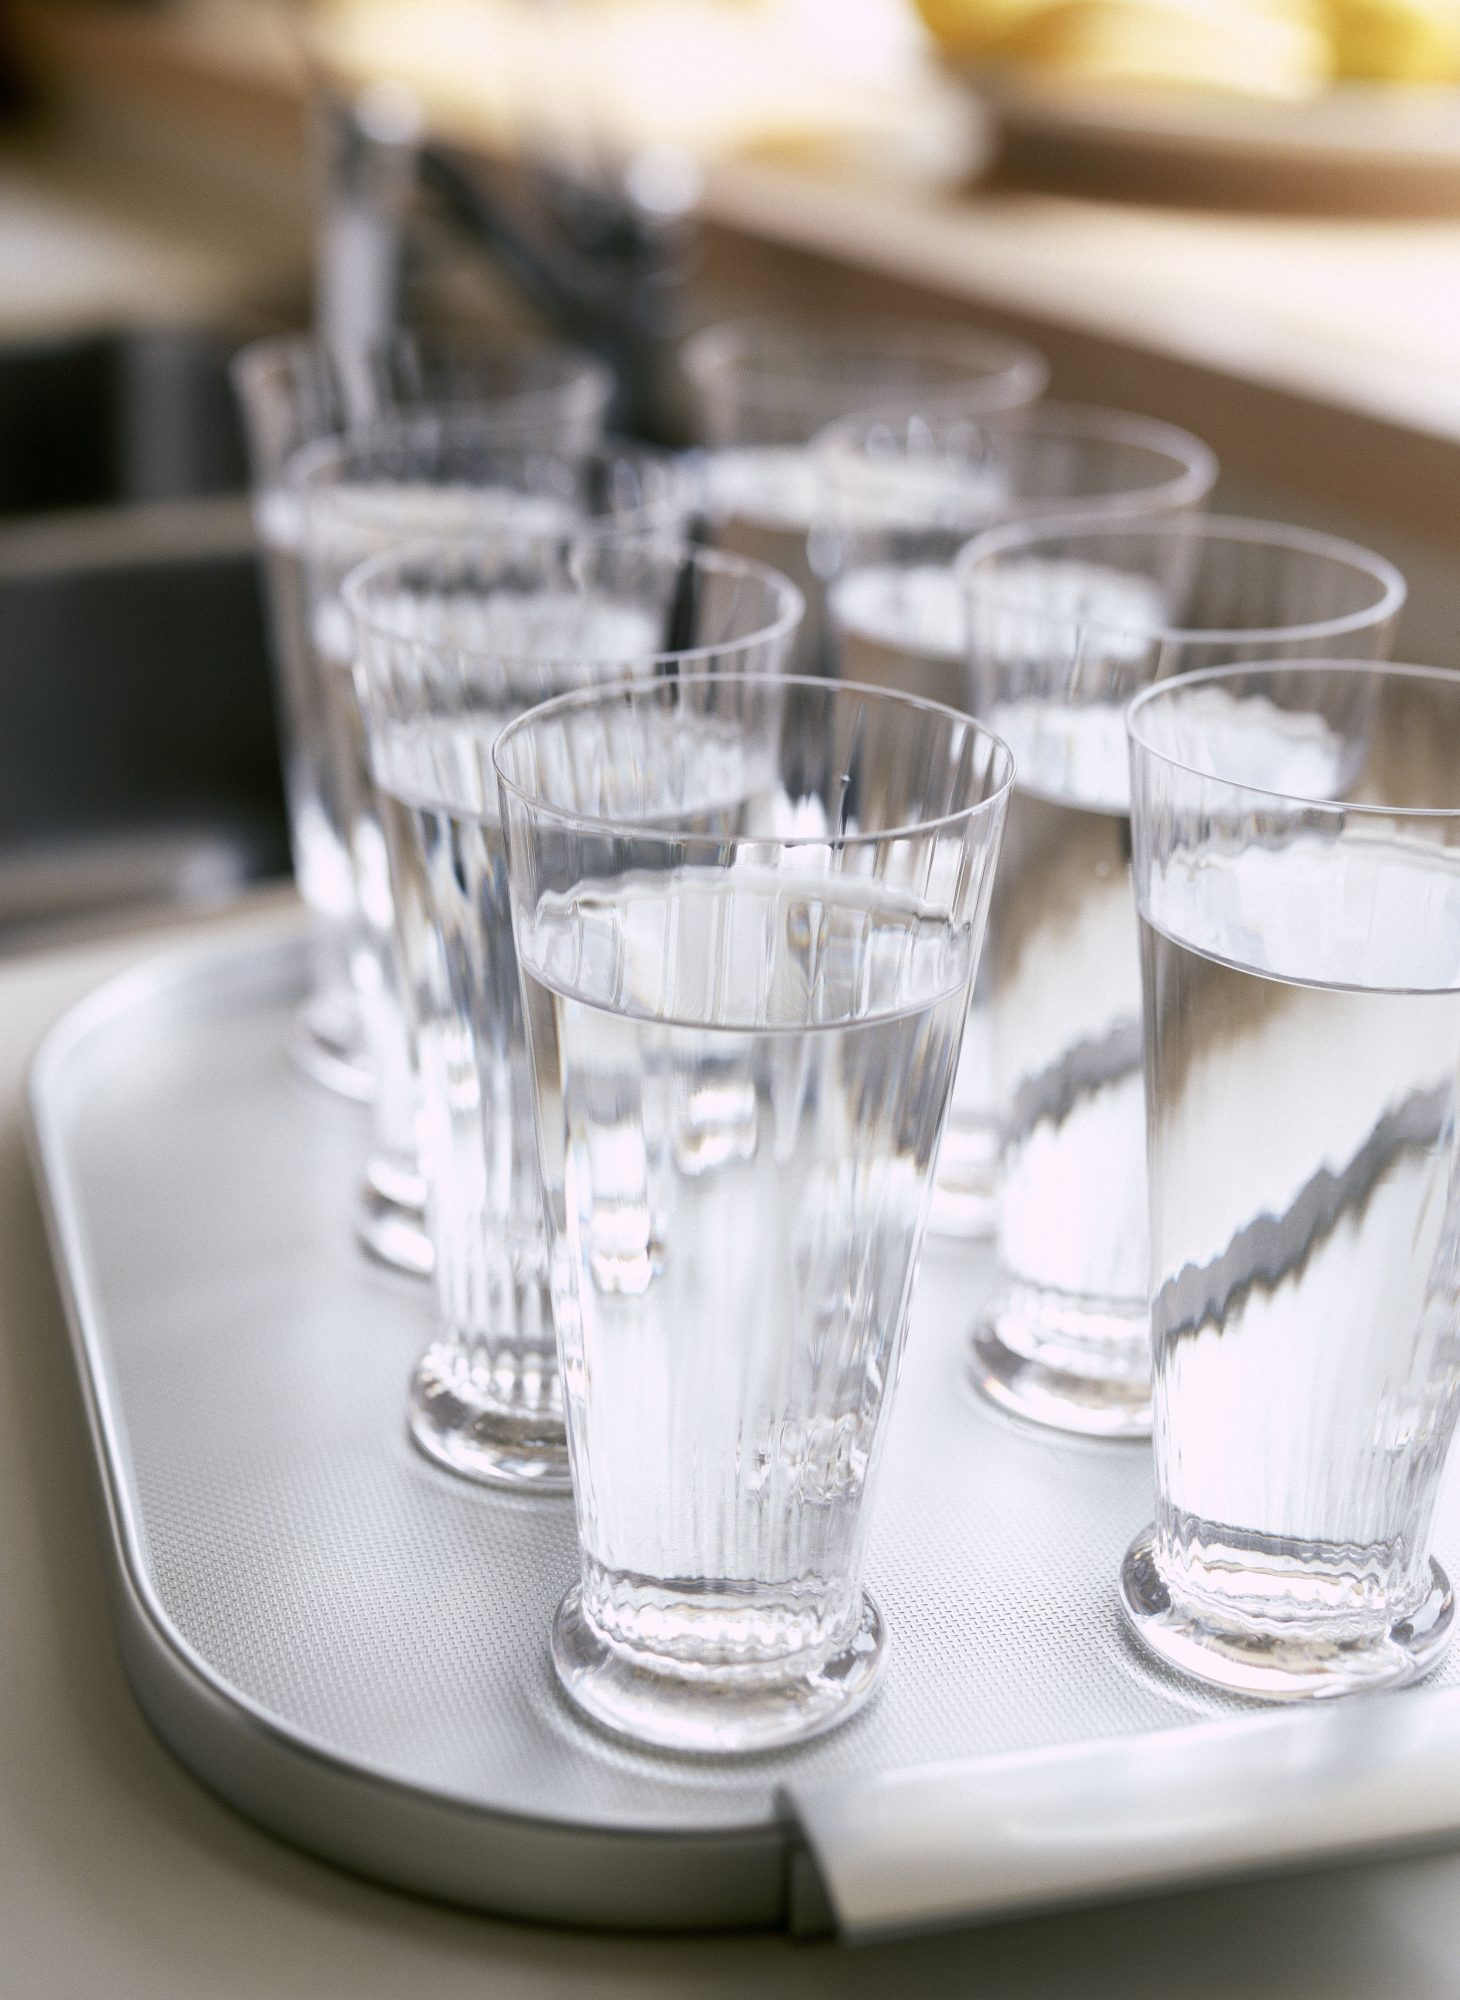 A new study reveals the myth of 8 glasses of water a day